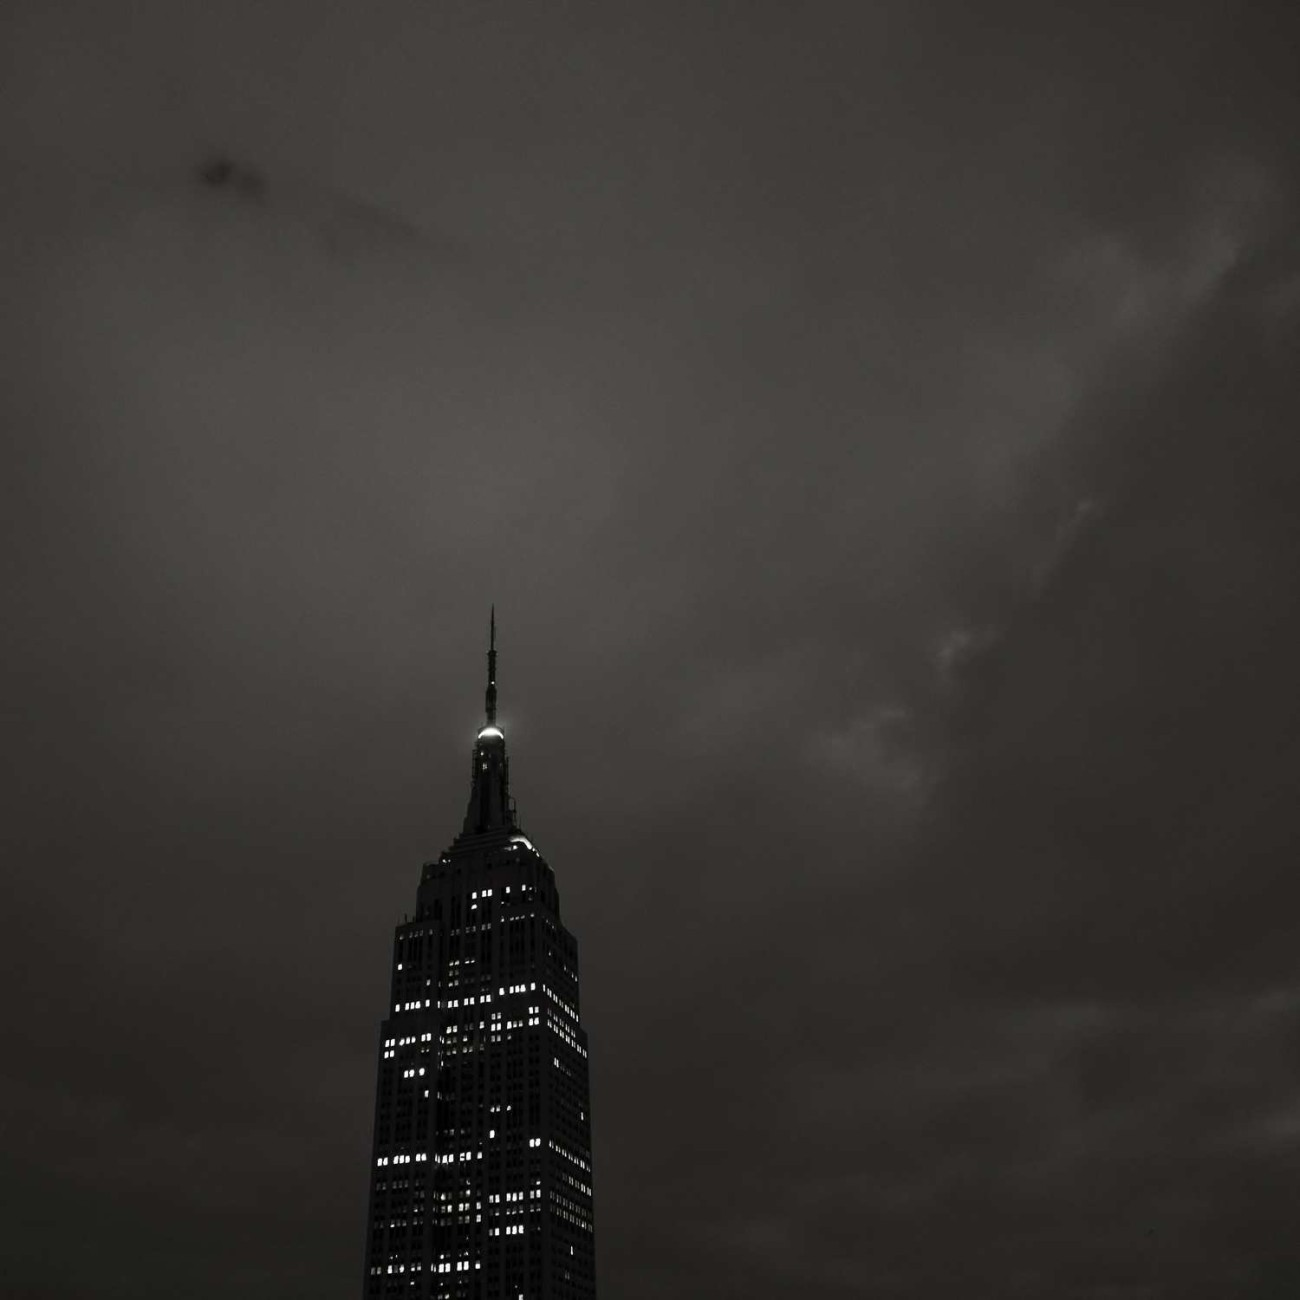 Middle of the night, Empire State Building, 2014